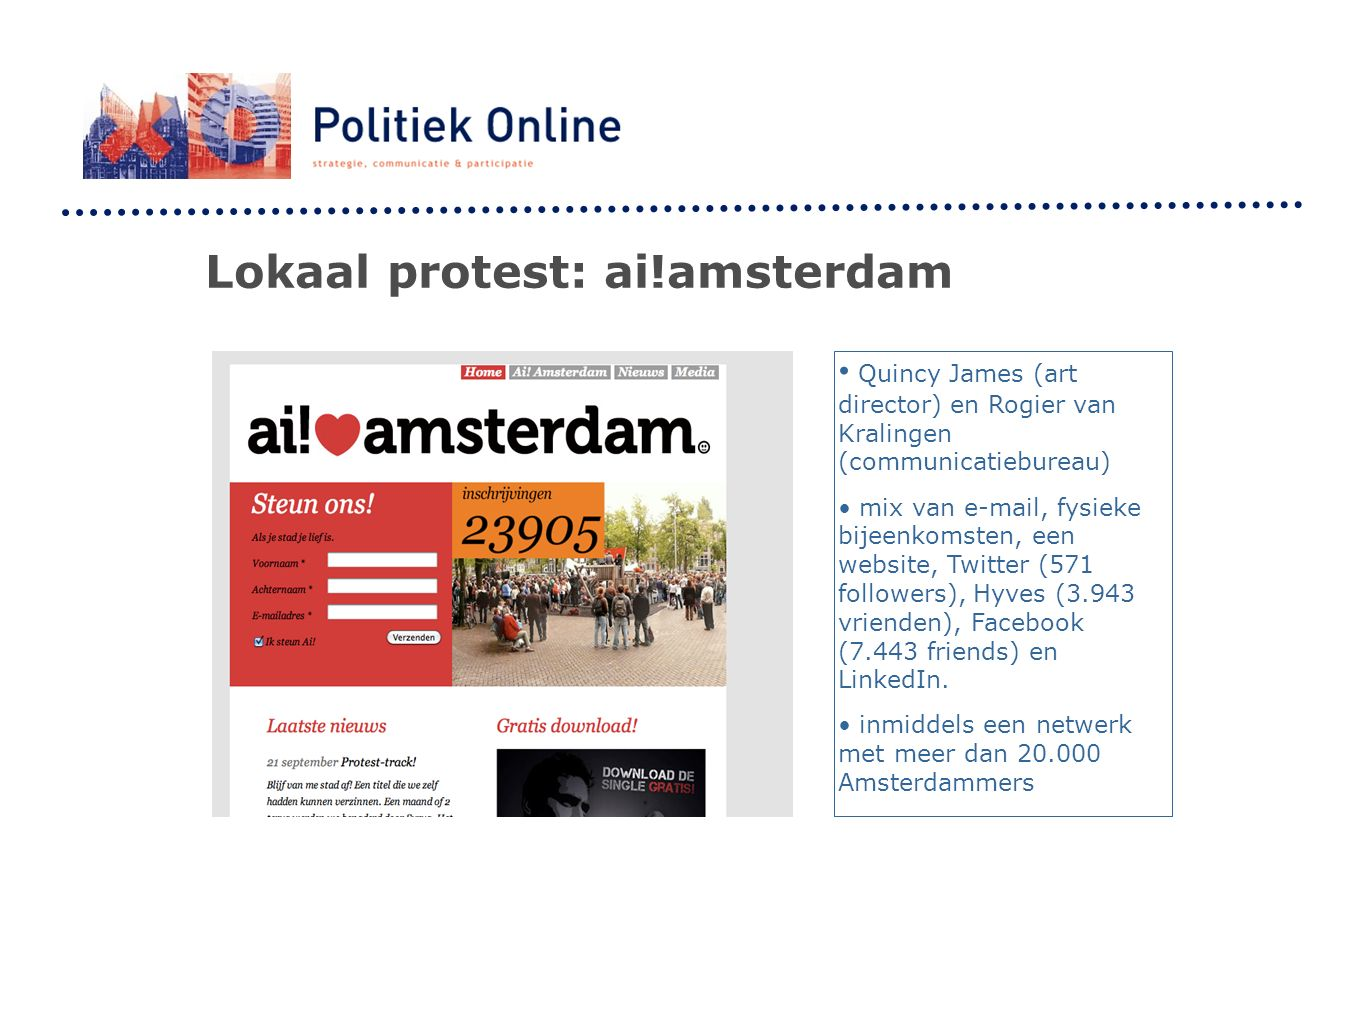 Lokaal protest: ai!amsterdam Quincy James (art director) en Rogier van Kralingen (communicatiebureau) mix van e-mail, fysieke bijeenkomsten, een website, Twitter (571 followers), Hyves (3.943 vrienden), Facebook (7.443 friends) en LinkedIn.